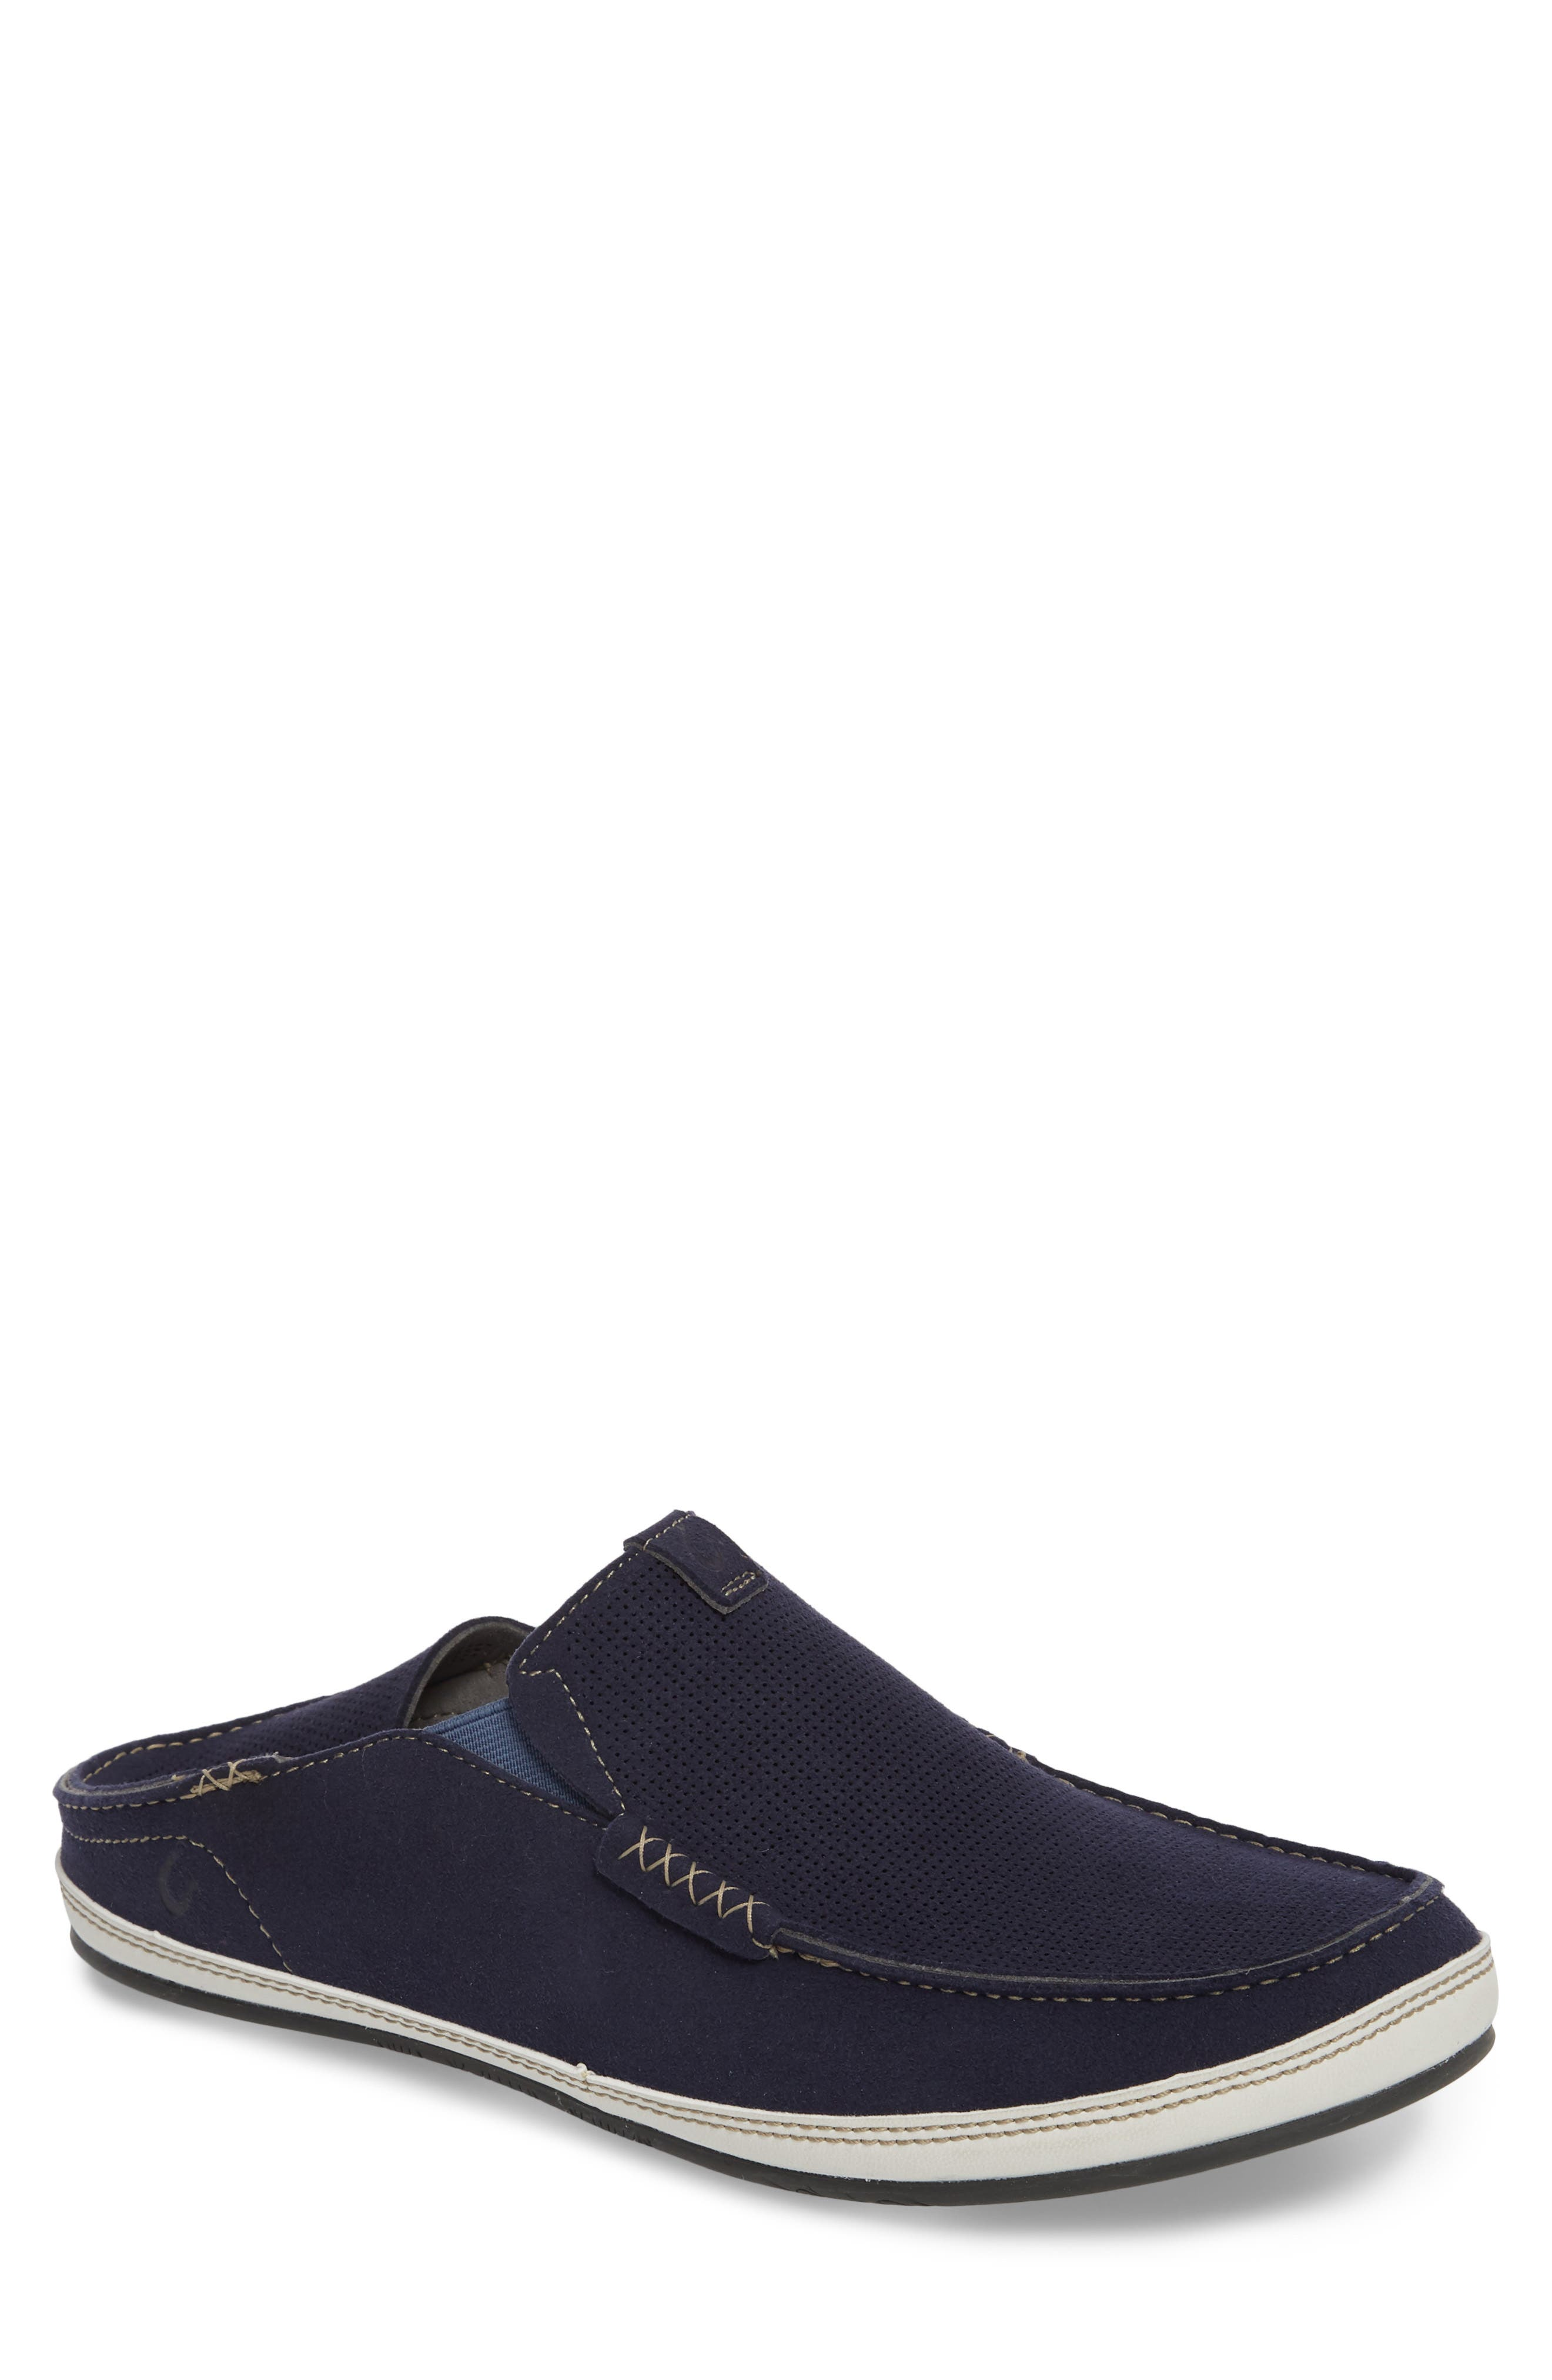 Kauwela Collapsible Slip-On,                             Main thumbnail 1, color,                             TRENCH BLUE/ OFF WHITE